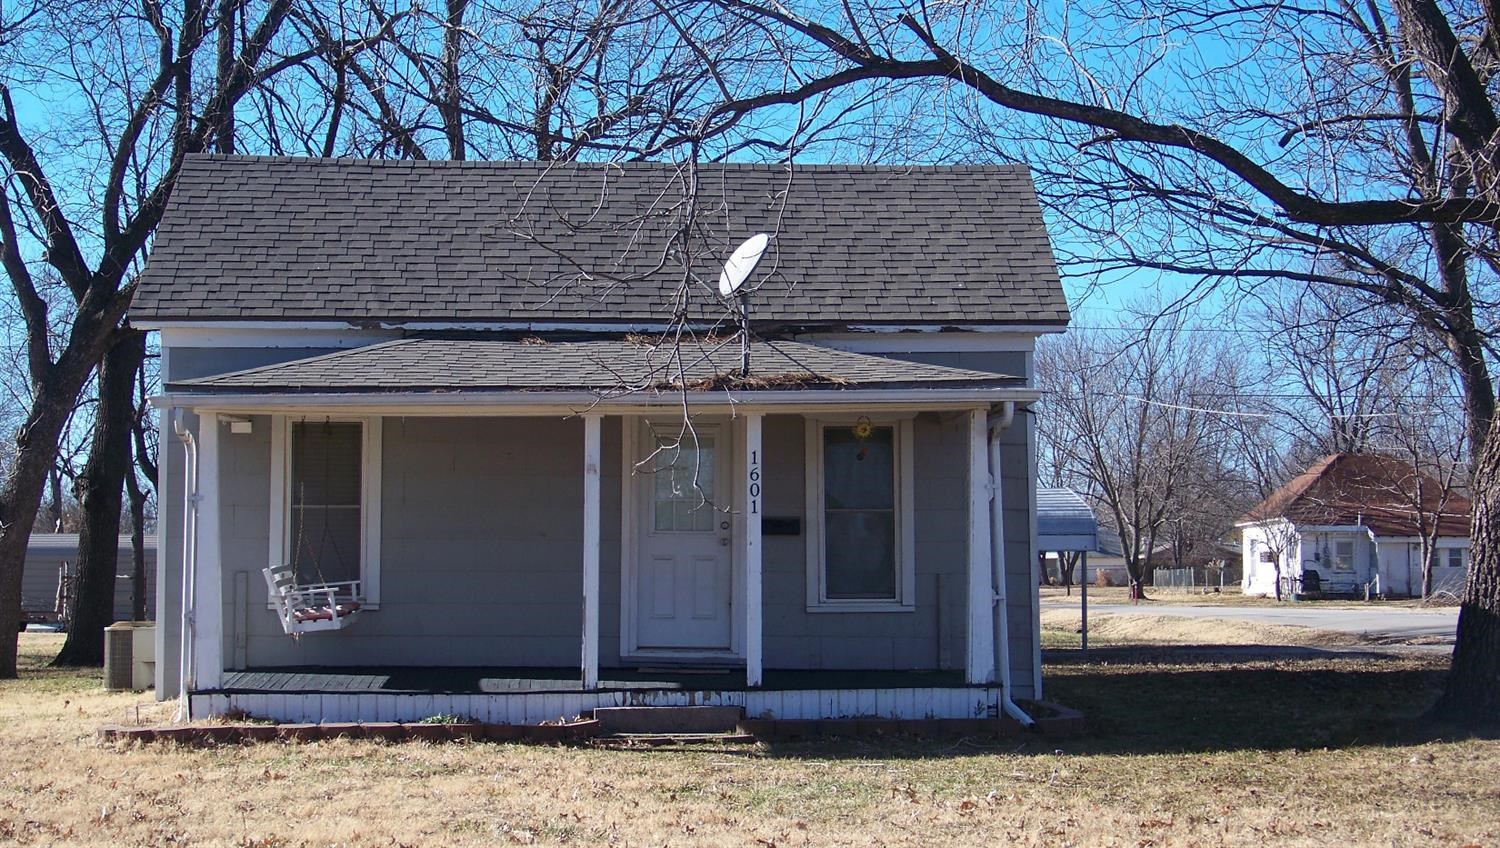 Home for sale in Chanute KS